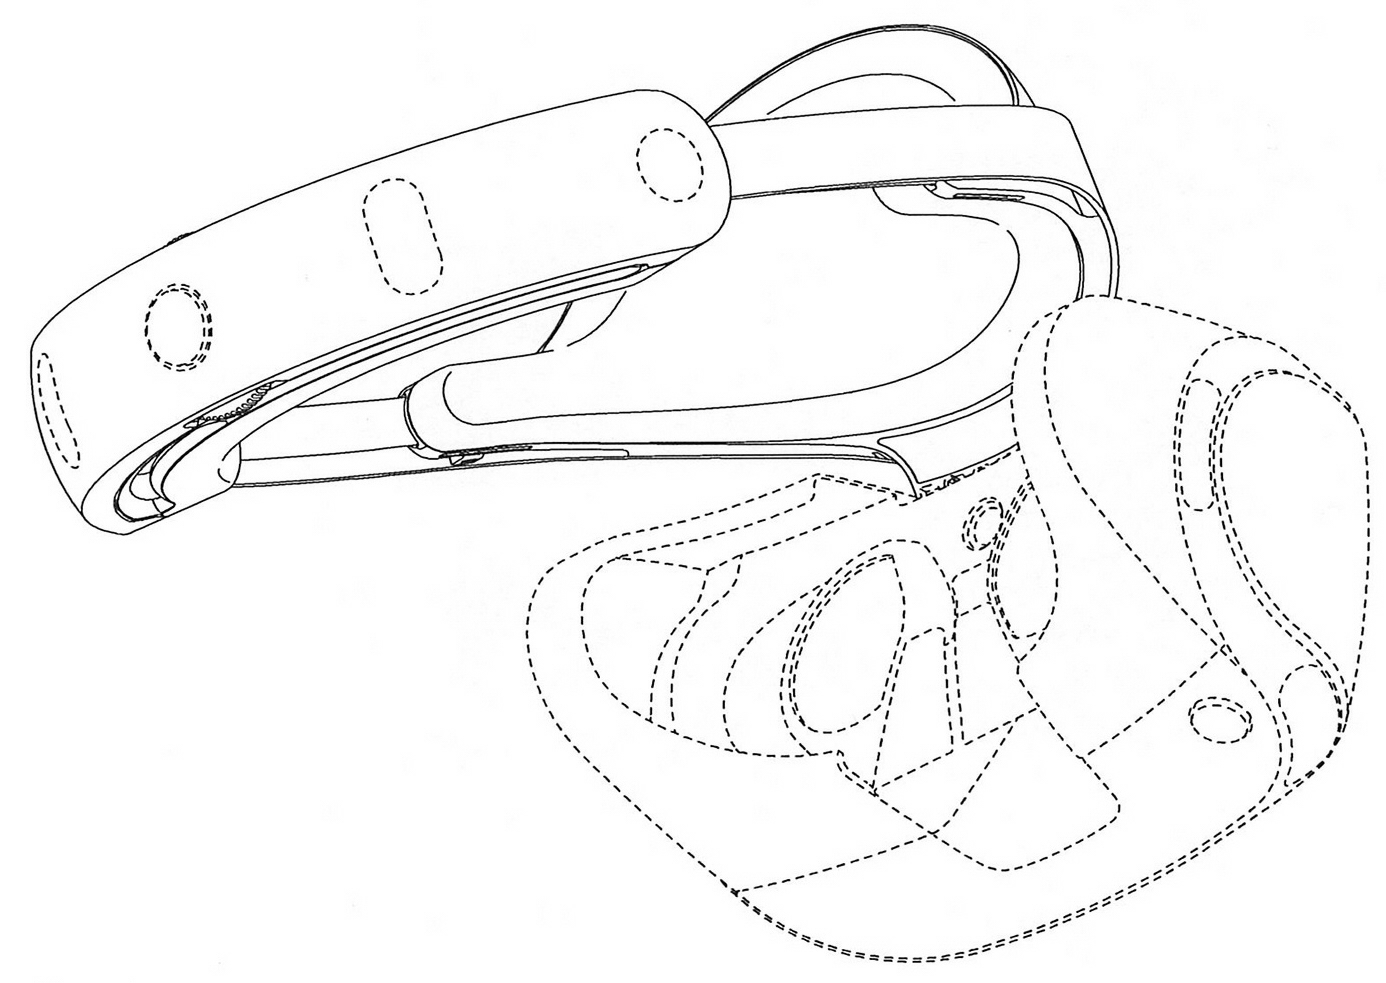 Playstation Vr Is The First Japanese Industrial Design